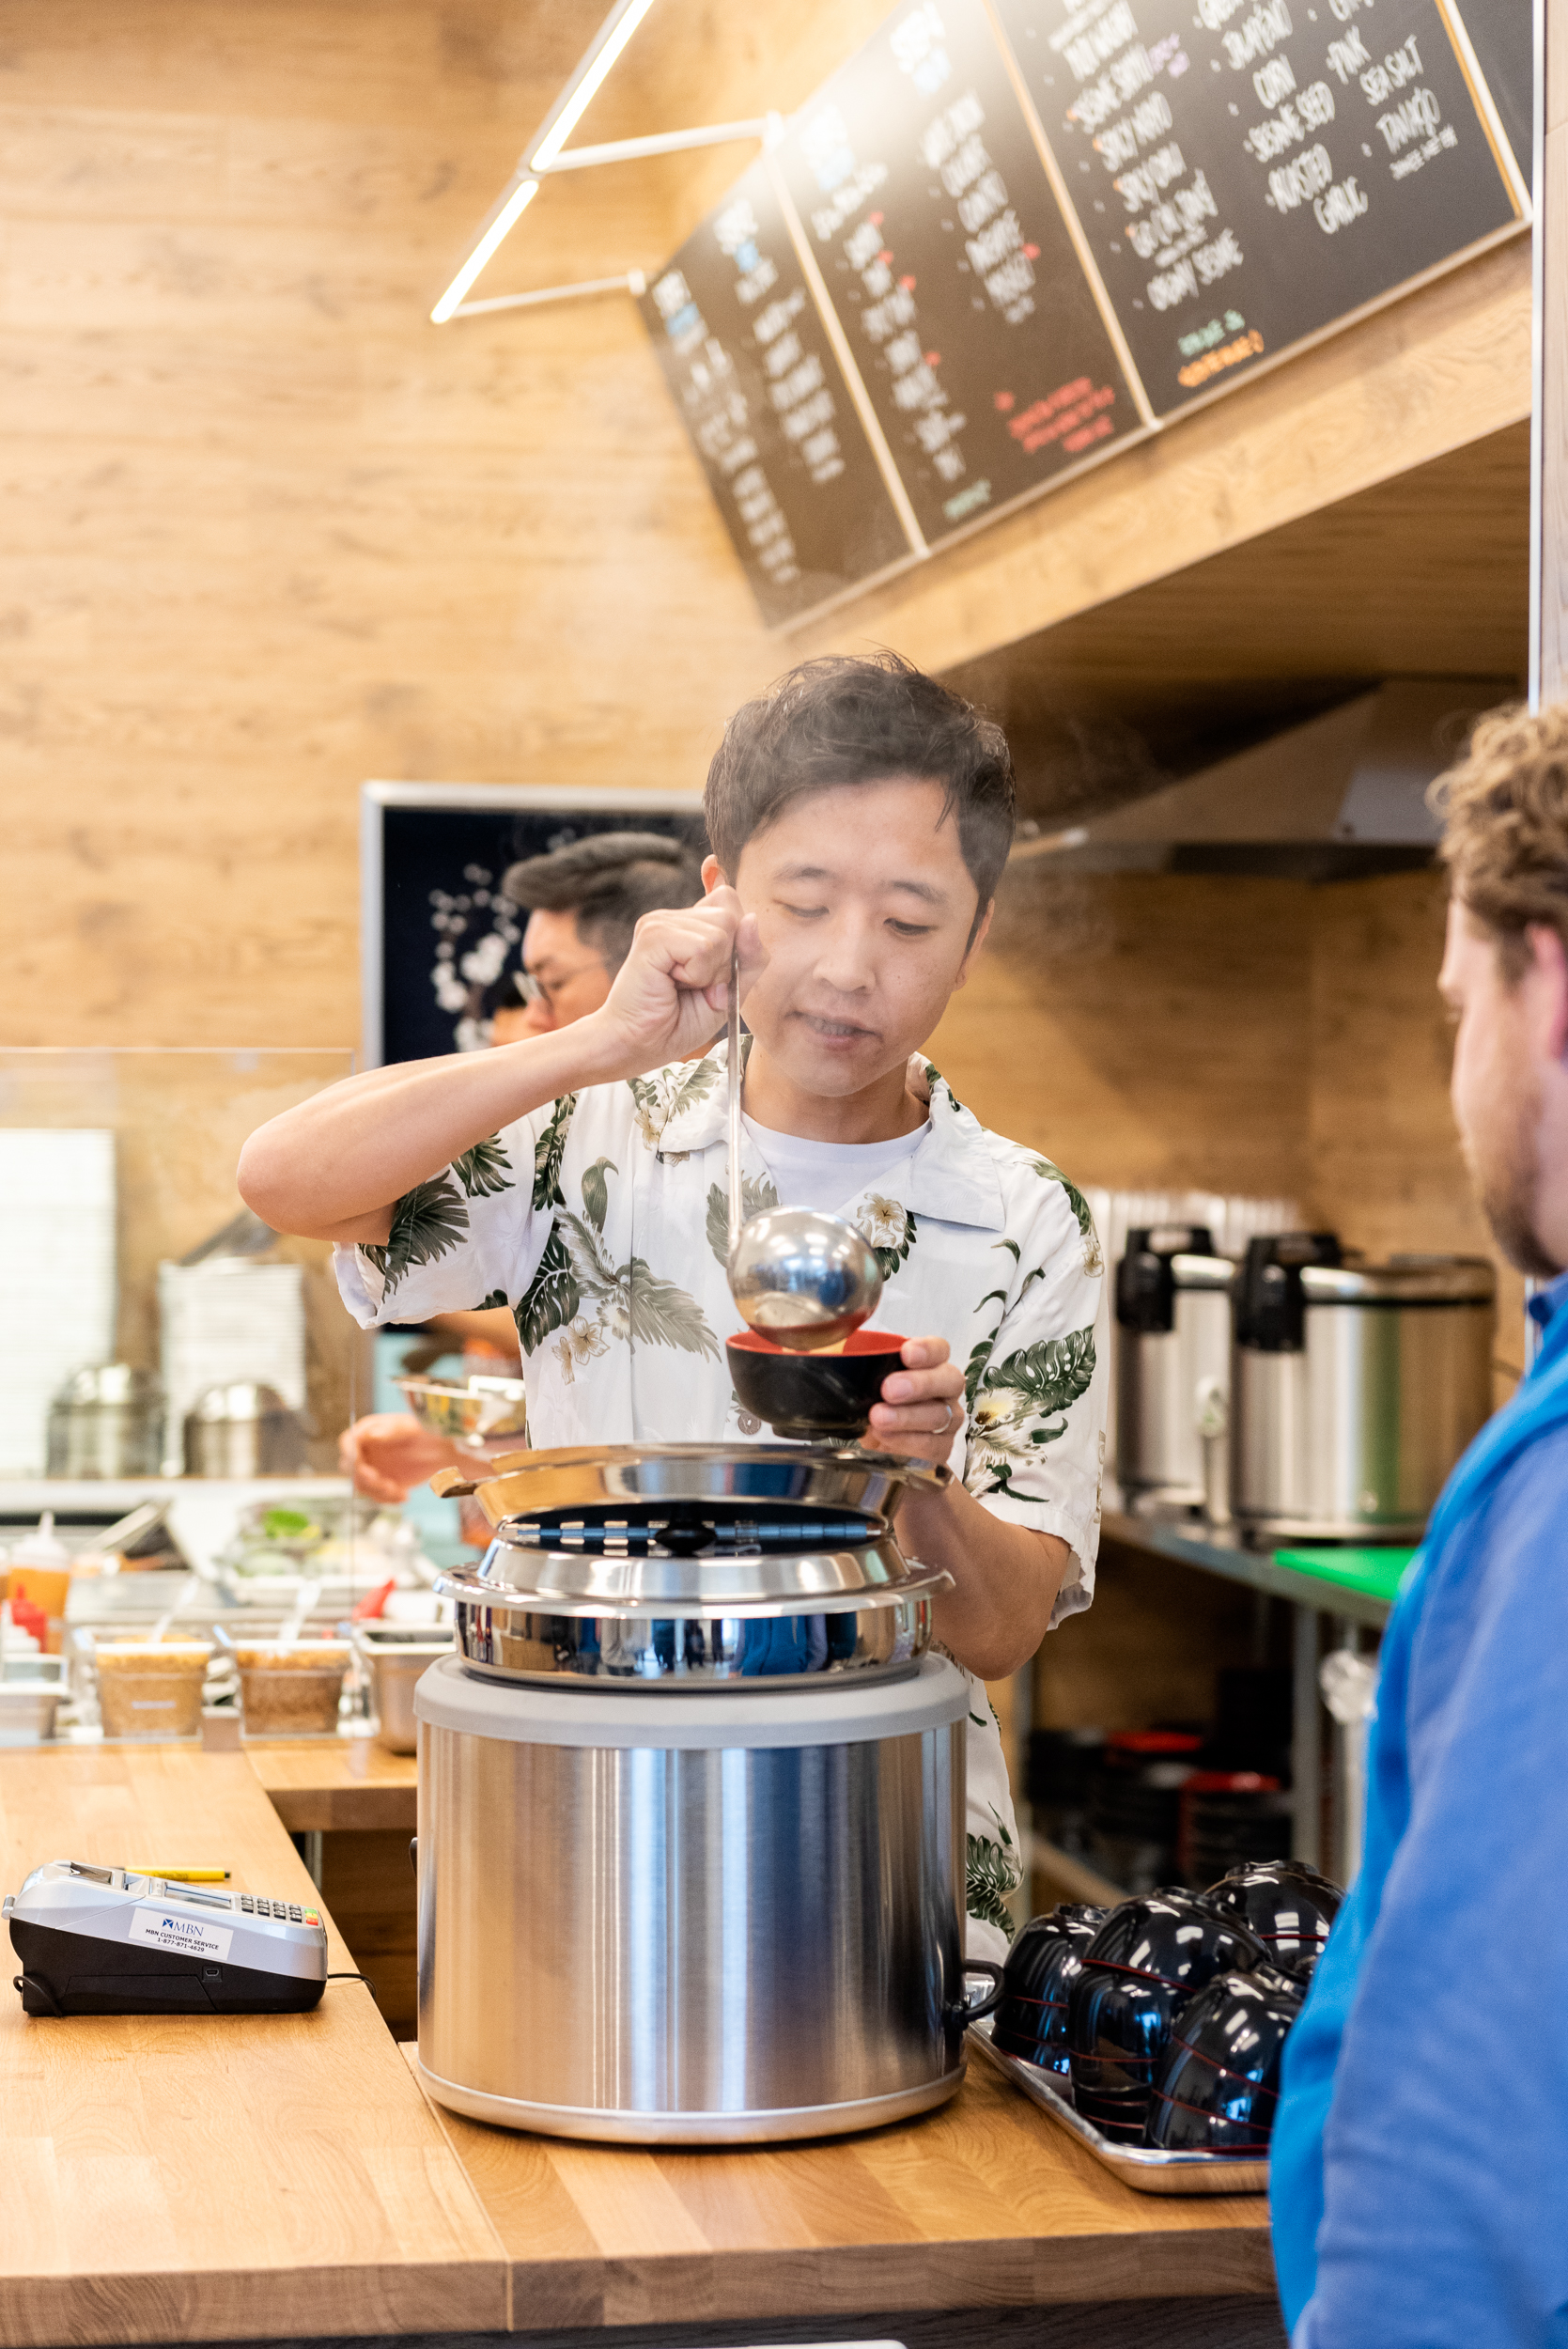 Joy Poke owner Justin Hwang serves steaming miso soup to a customer